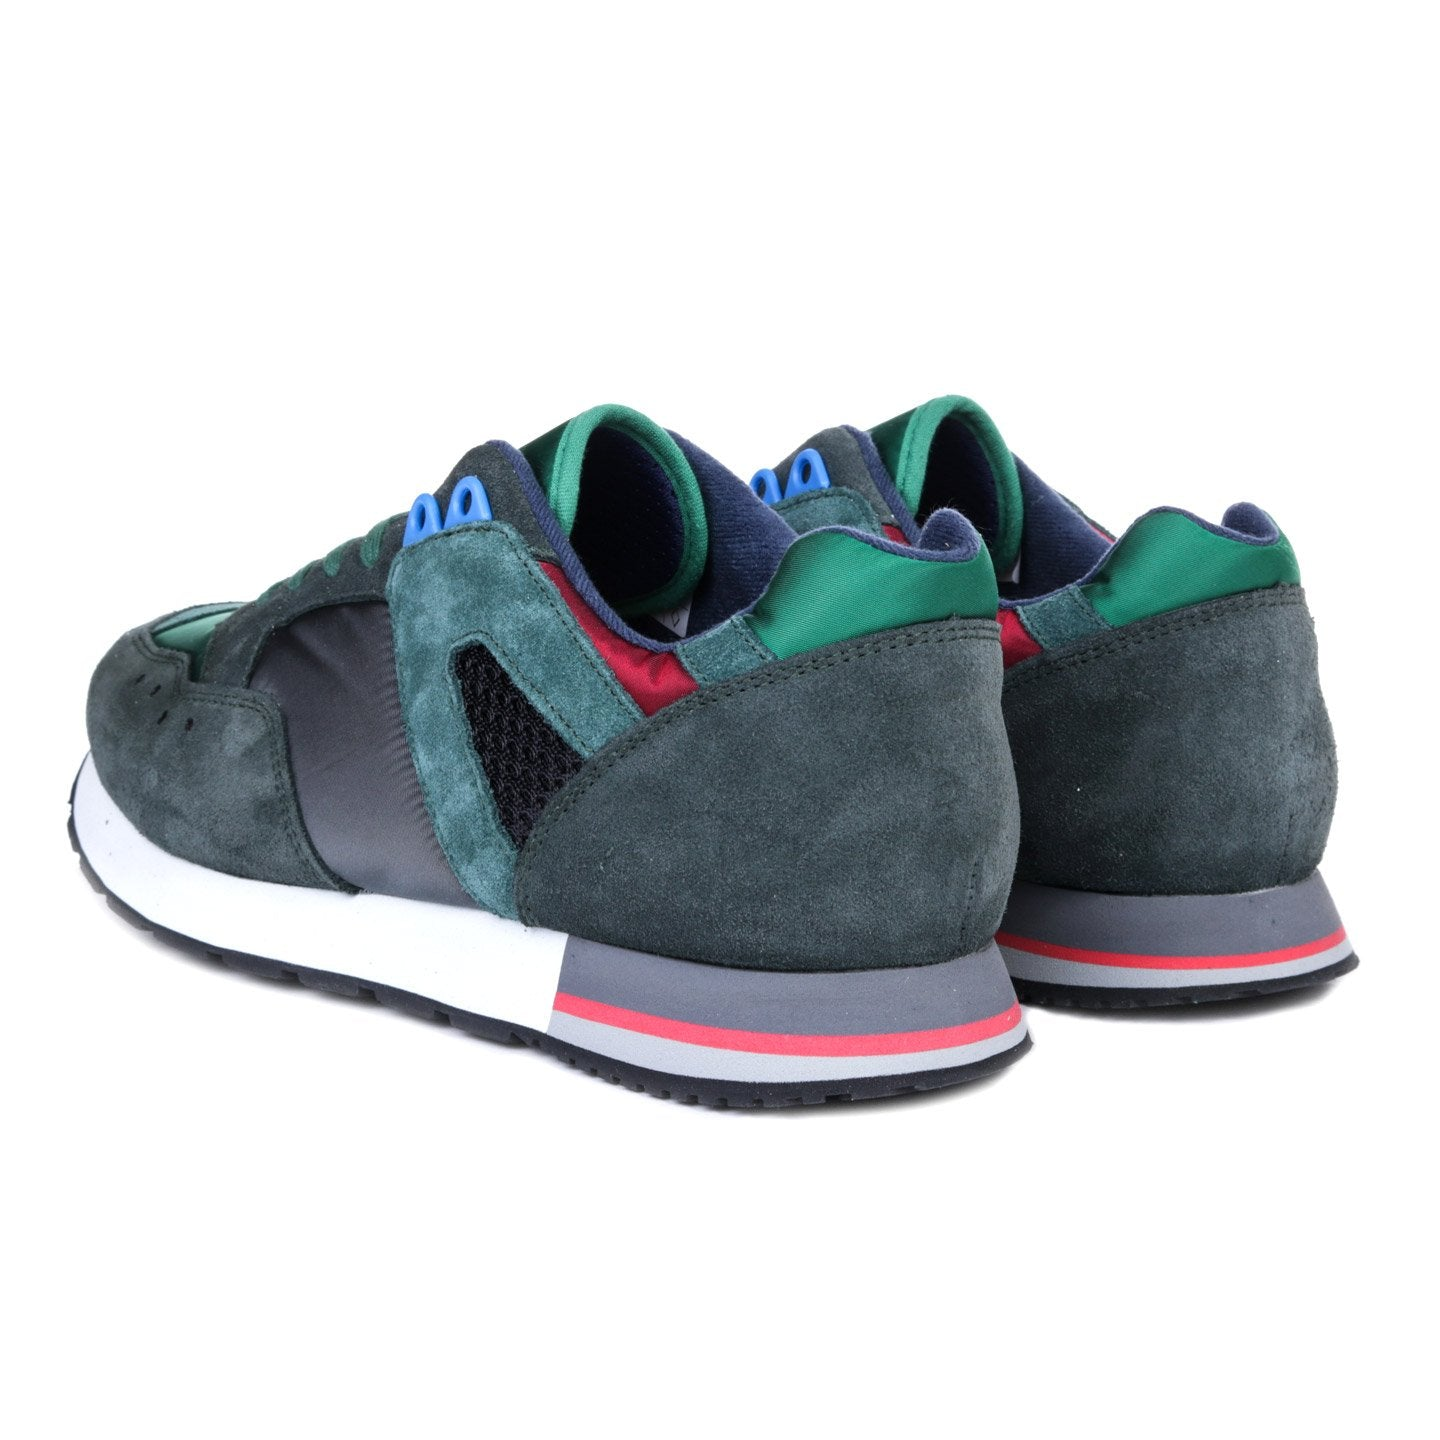 ROF French Trainers Charcoal Green